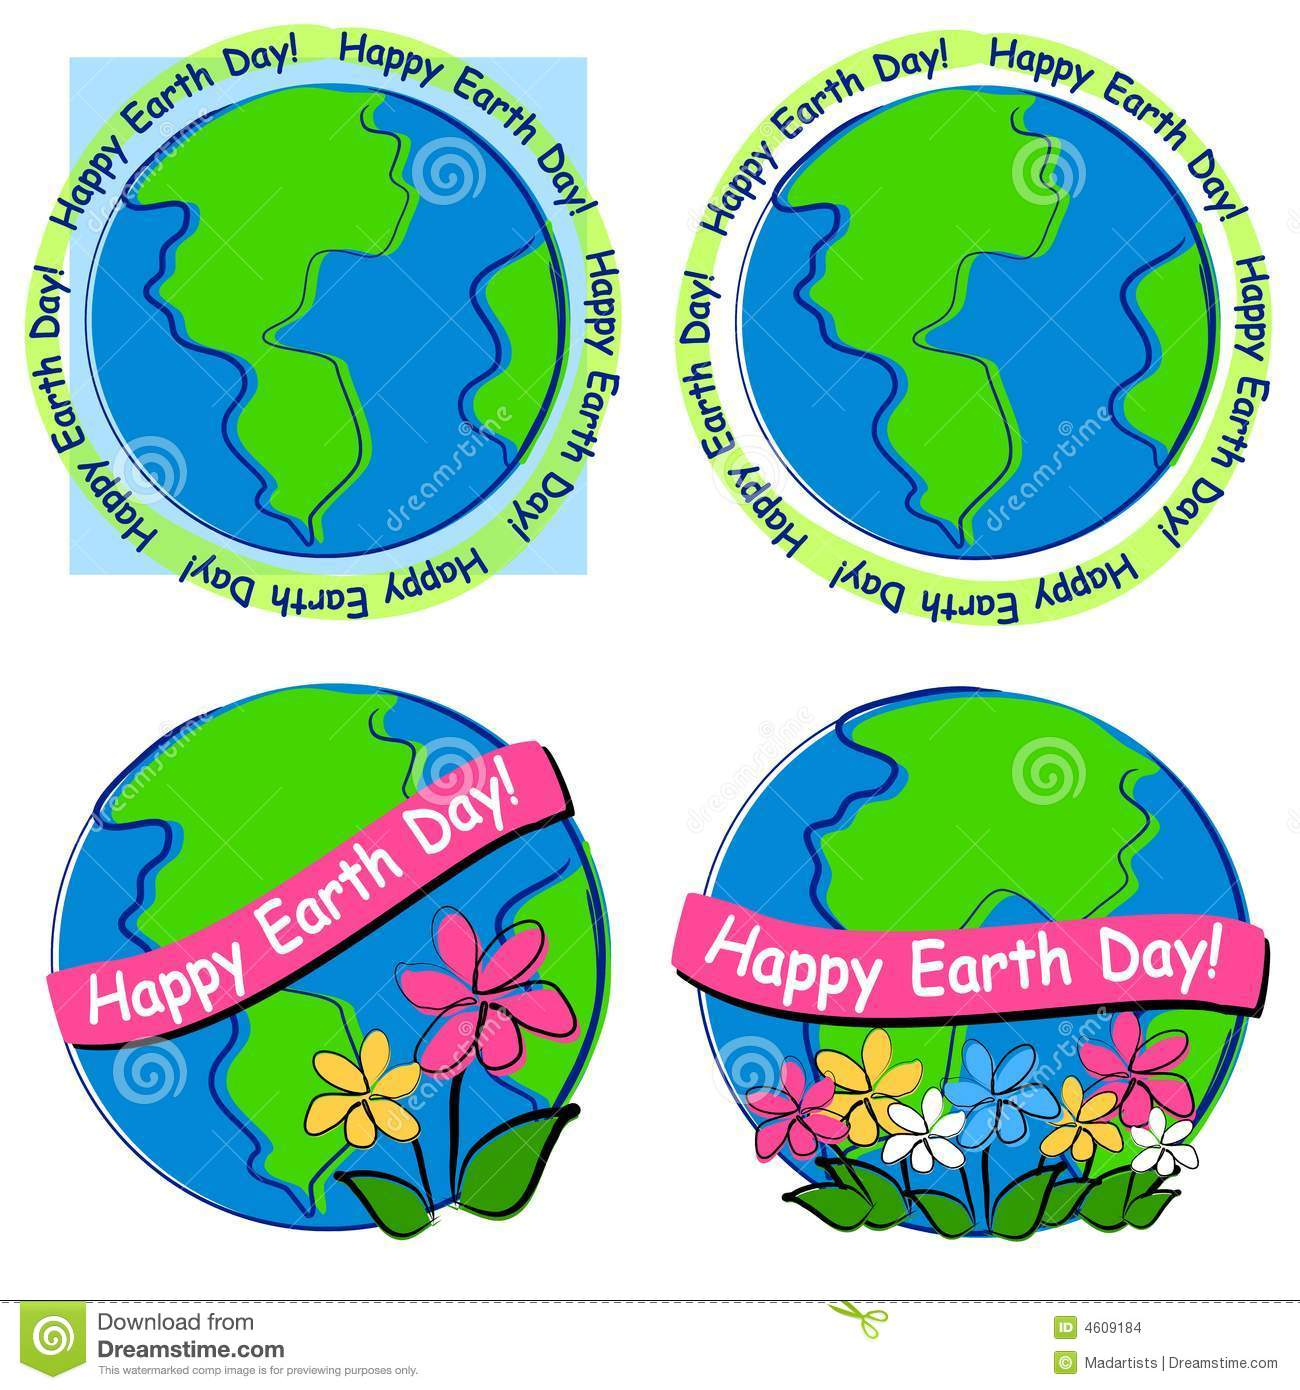 Happy Earth Day Clip Art Stock Images-Happy Earth Day Clip Art Stock Images-13